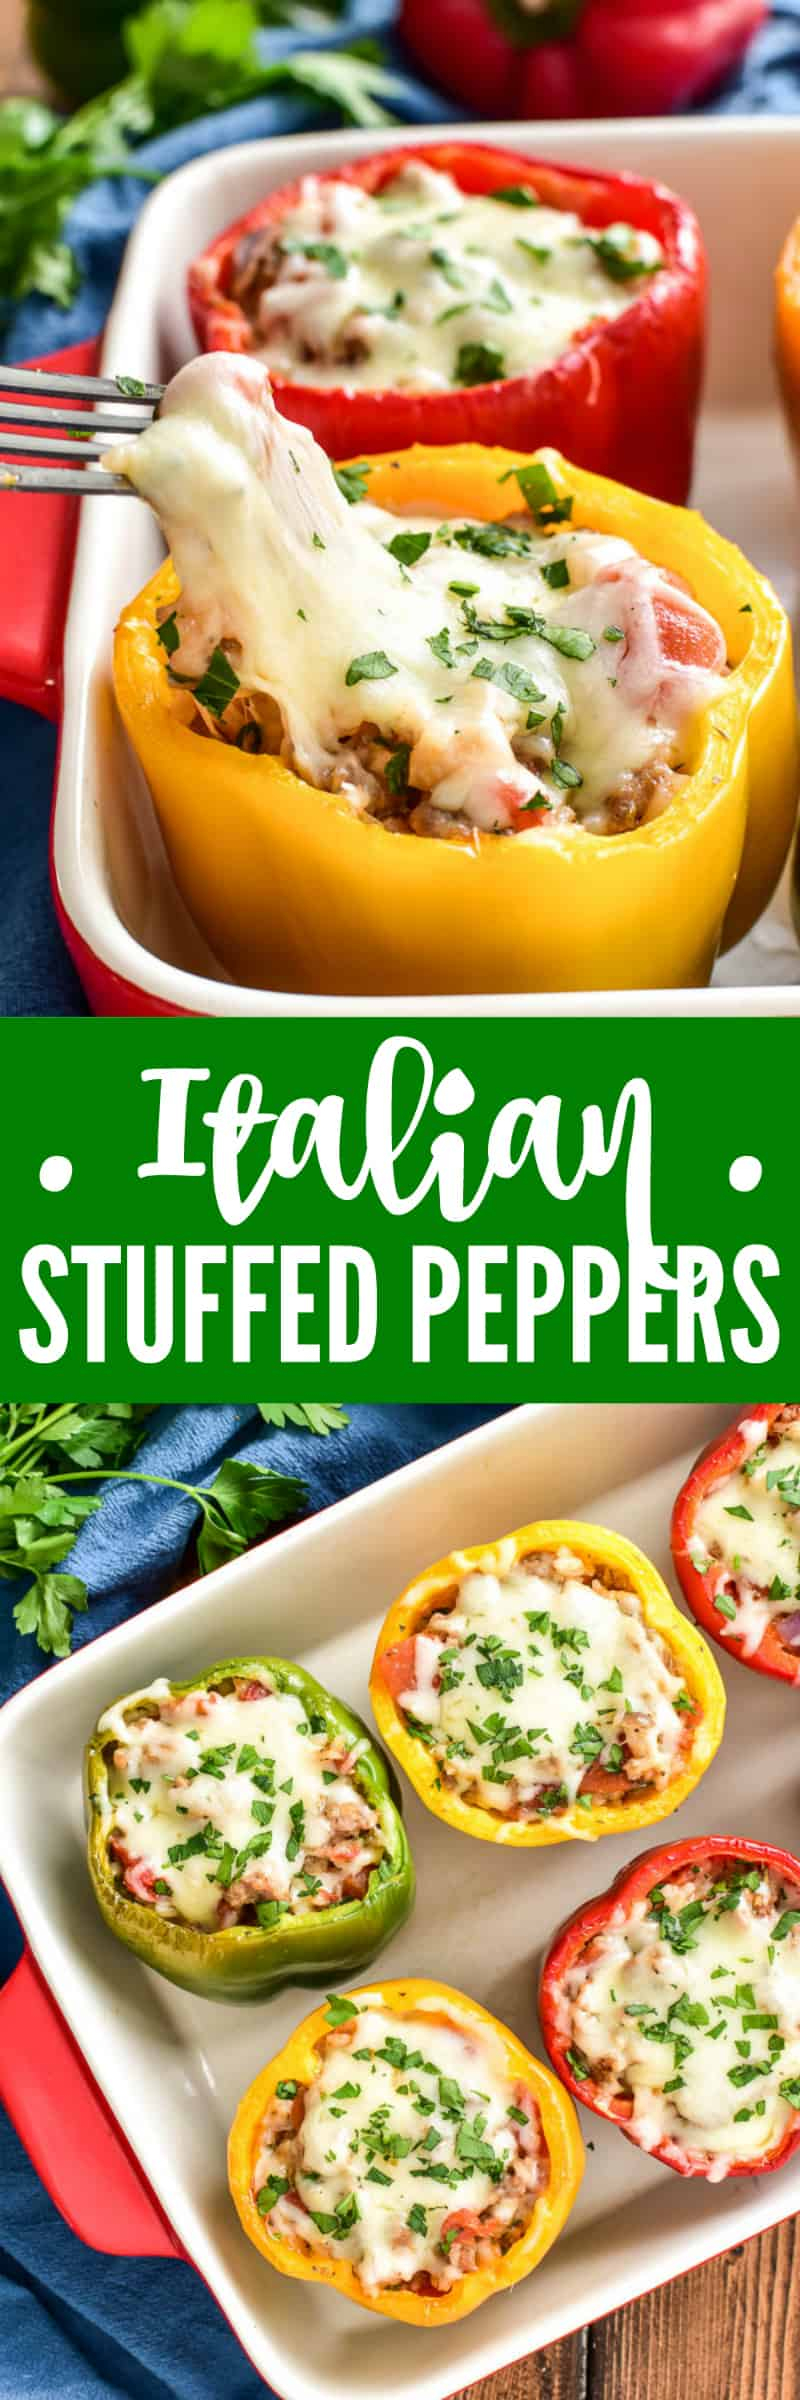 Collage image of Italian Stuffed Peppers